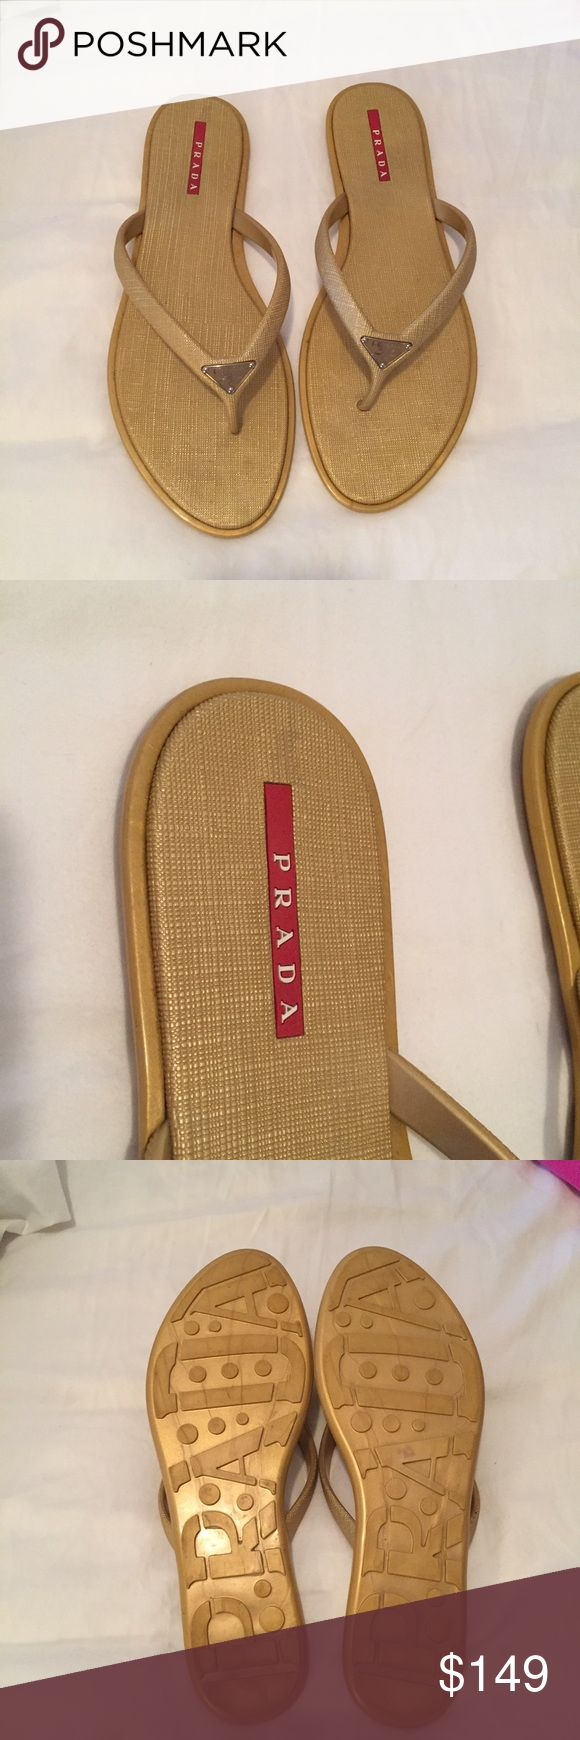 Prada gold/tan sandals size 10 100% authentic rubber Prada flip flops. Great condition, small wear area above red label, see second photo, barely noticeable. Perfect for the beach or pool. Prada Shoes Sandals